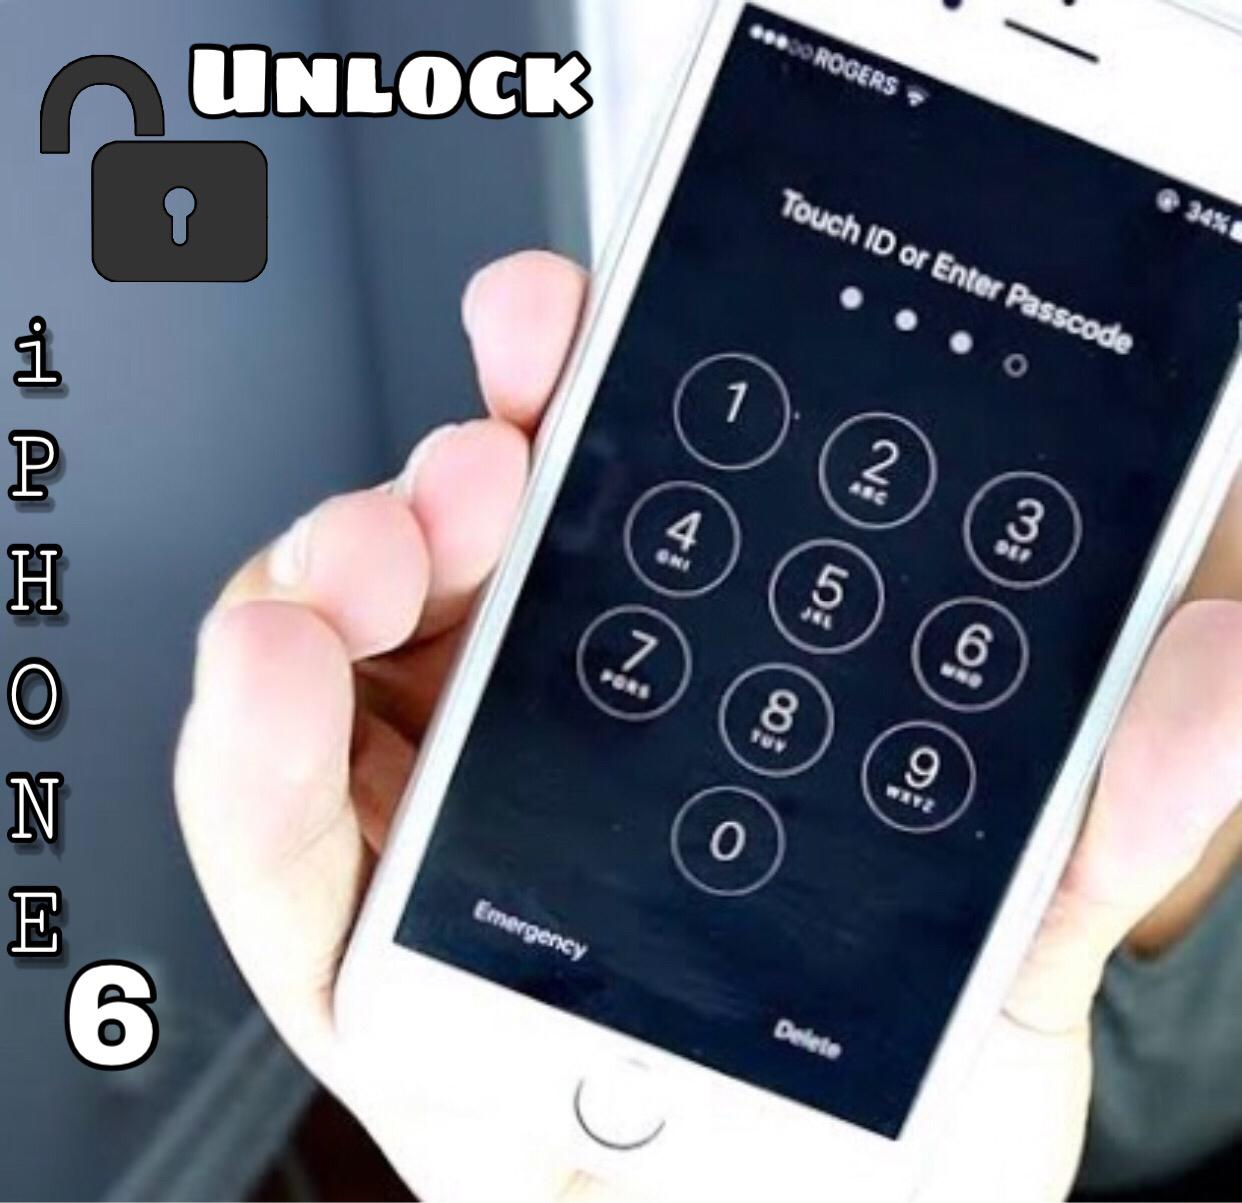 How to Unlock iPhone 6 passcode